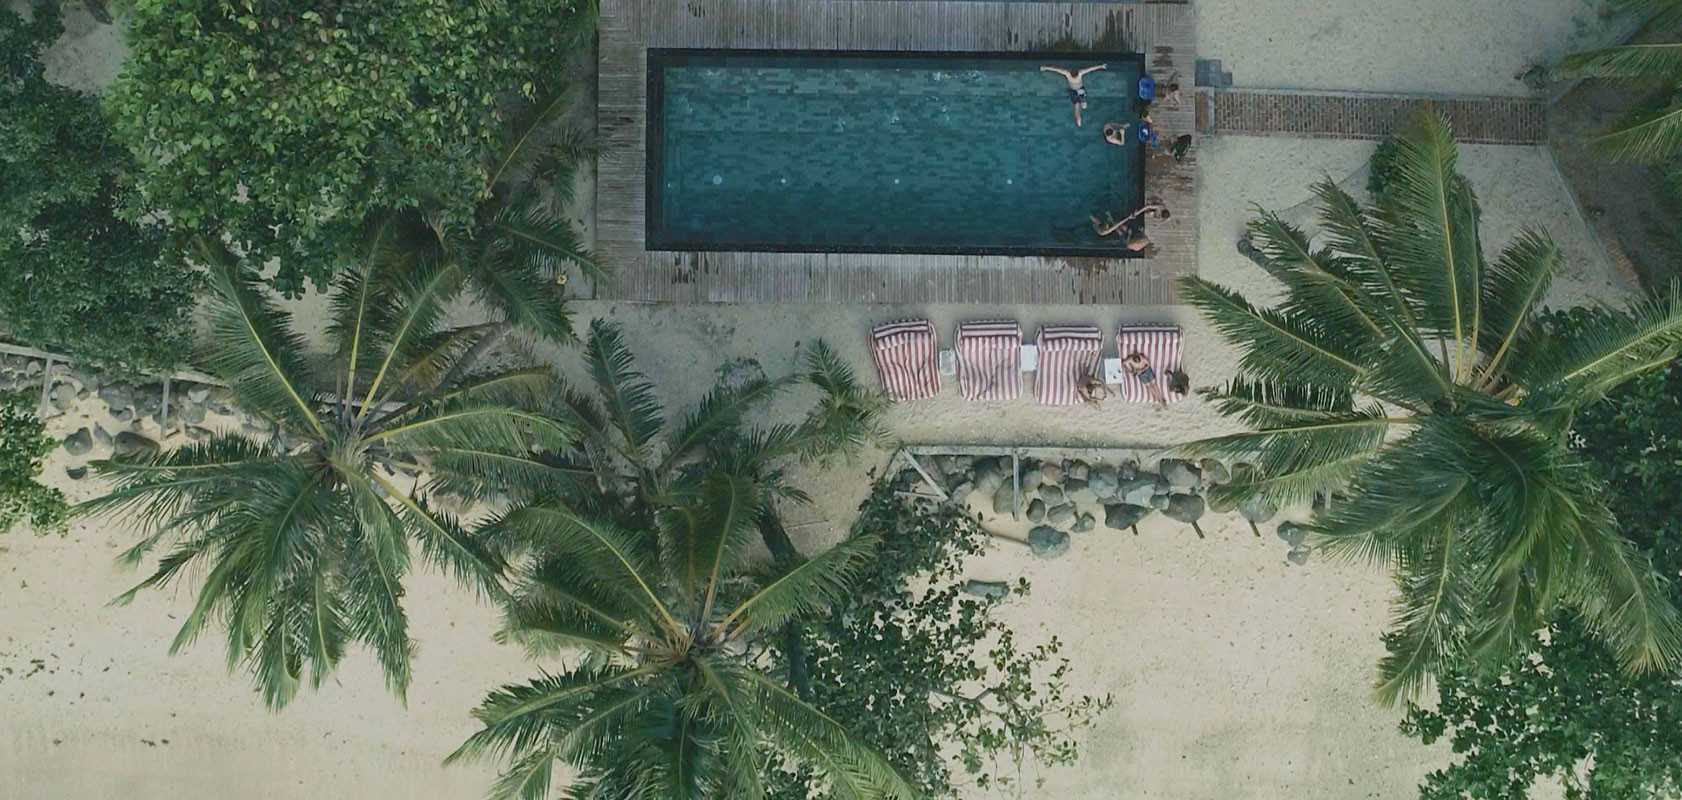 outfront-&-pool.jpg